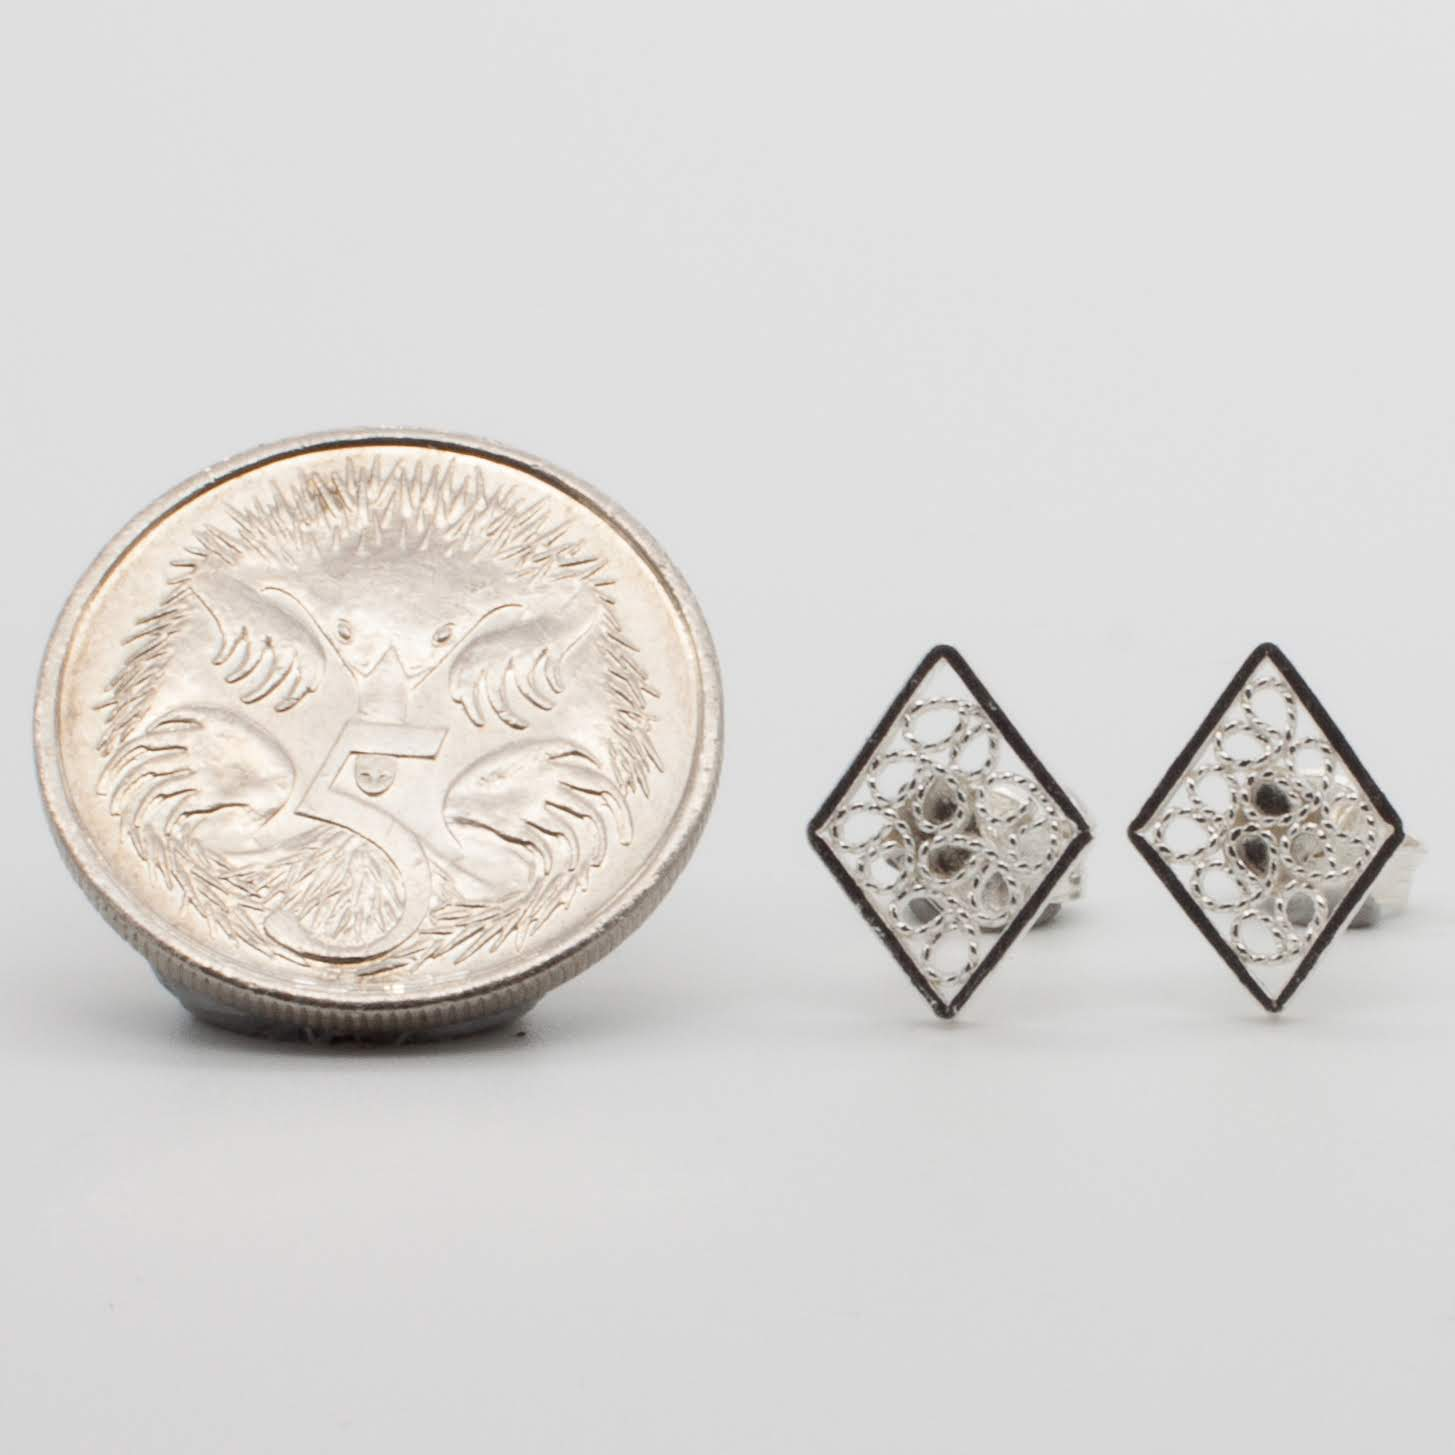 Filigree Sterling Silver Rhombus (Rombo) Stud Earrings by Gaviota